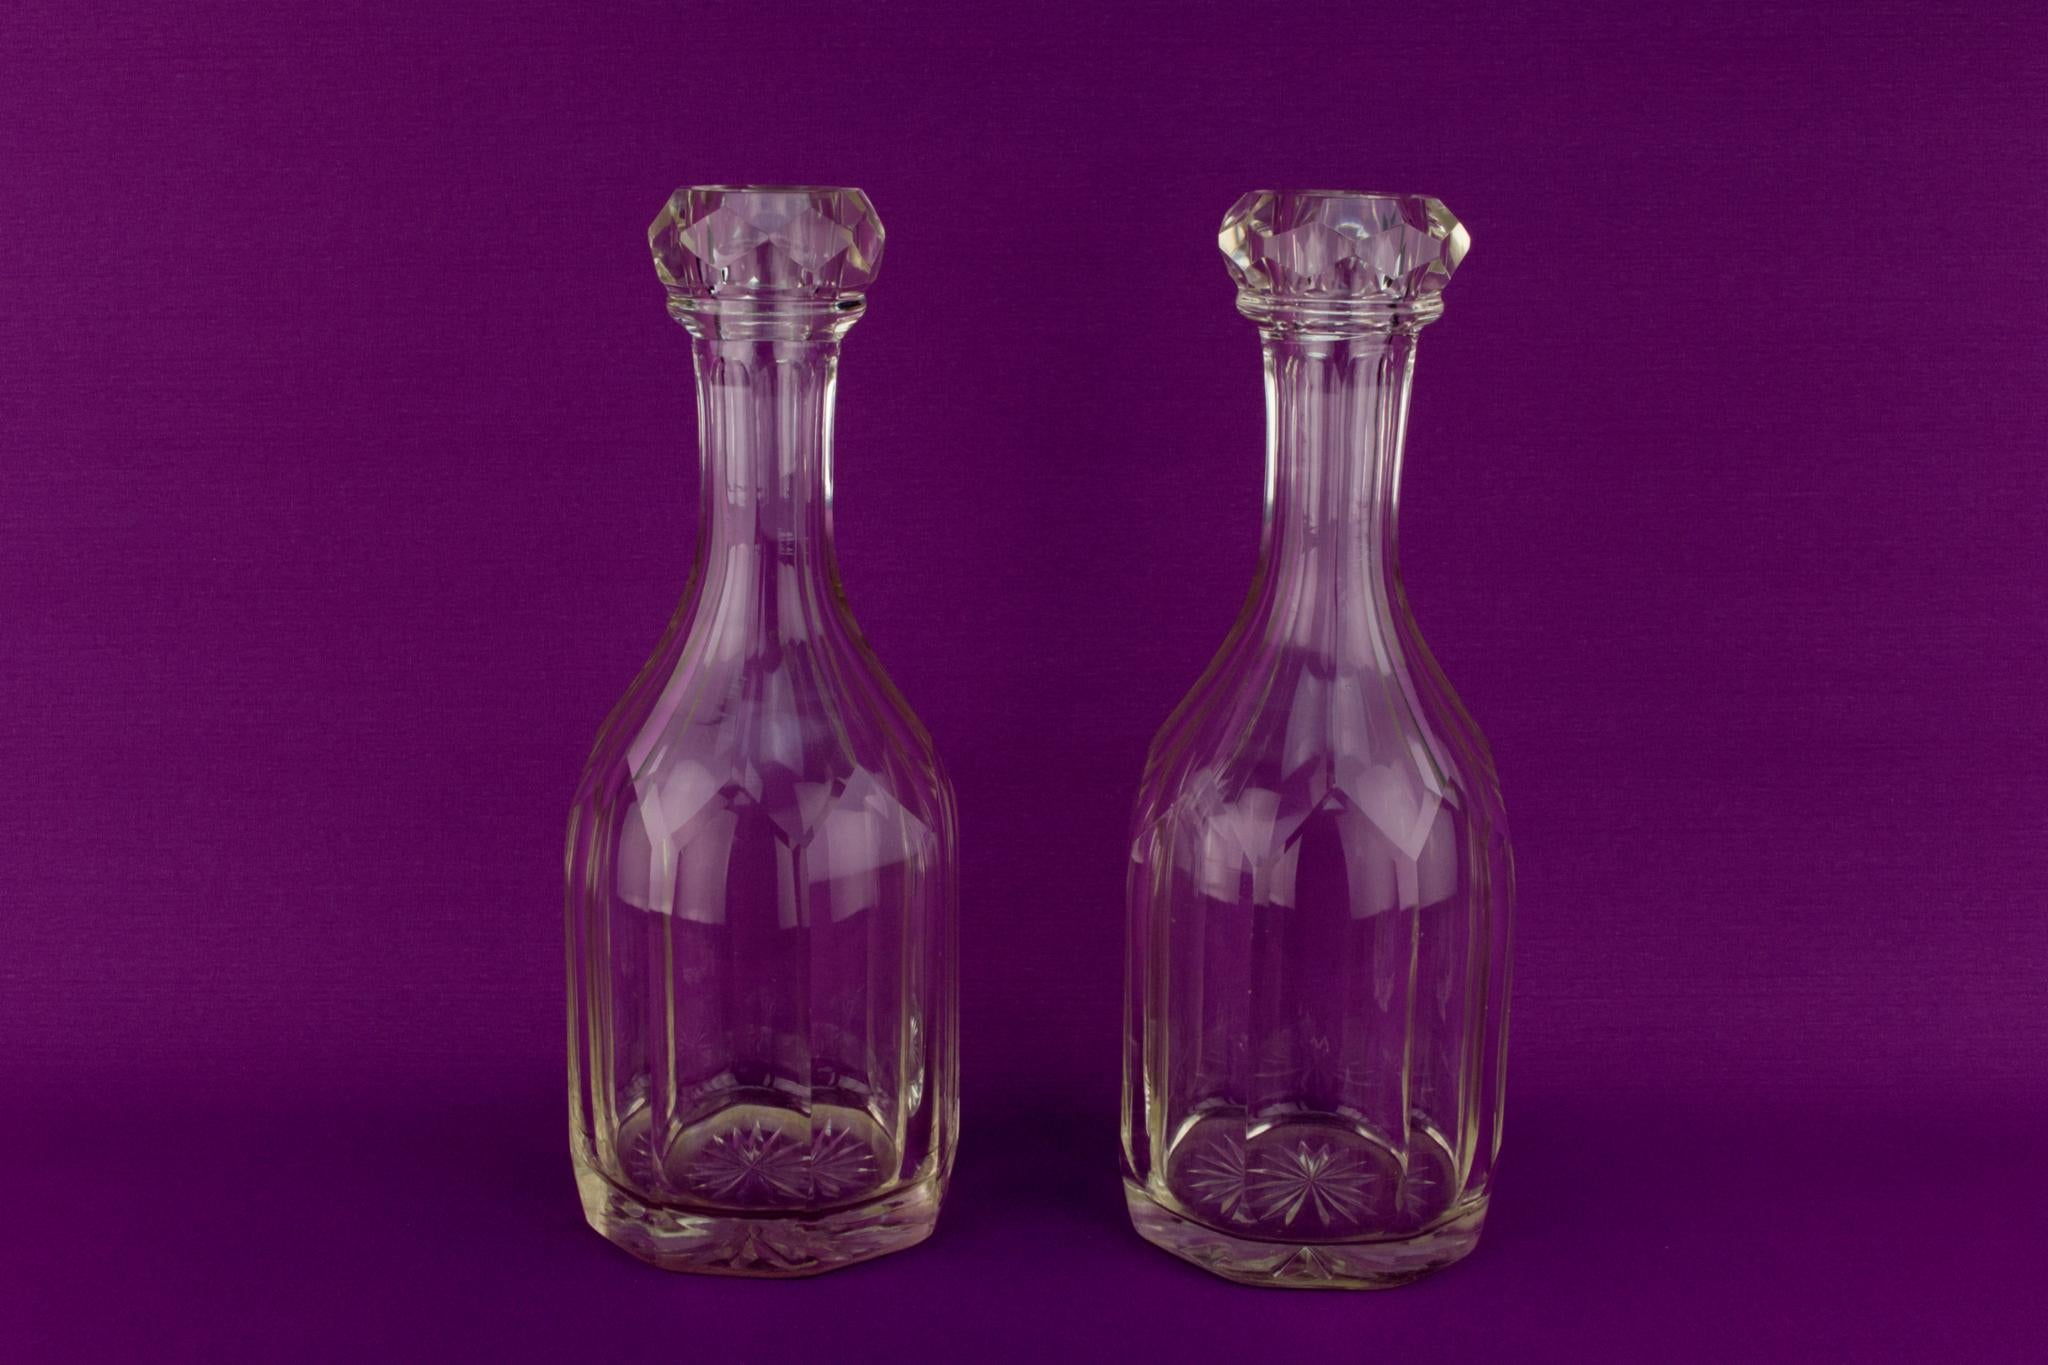 2 Cut Glass Wine Carafes, English Georgian Early 1800s